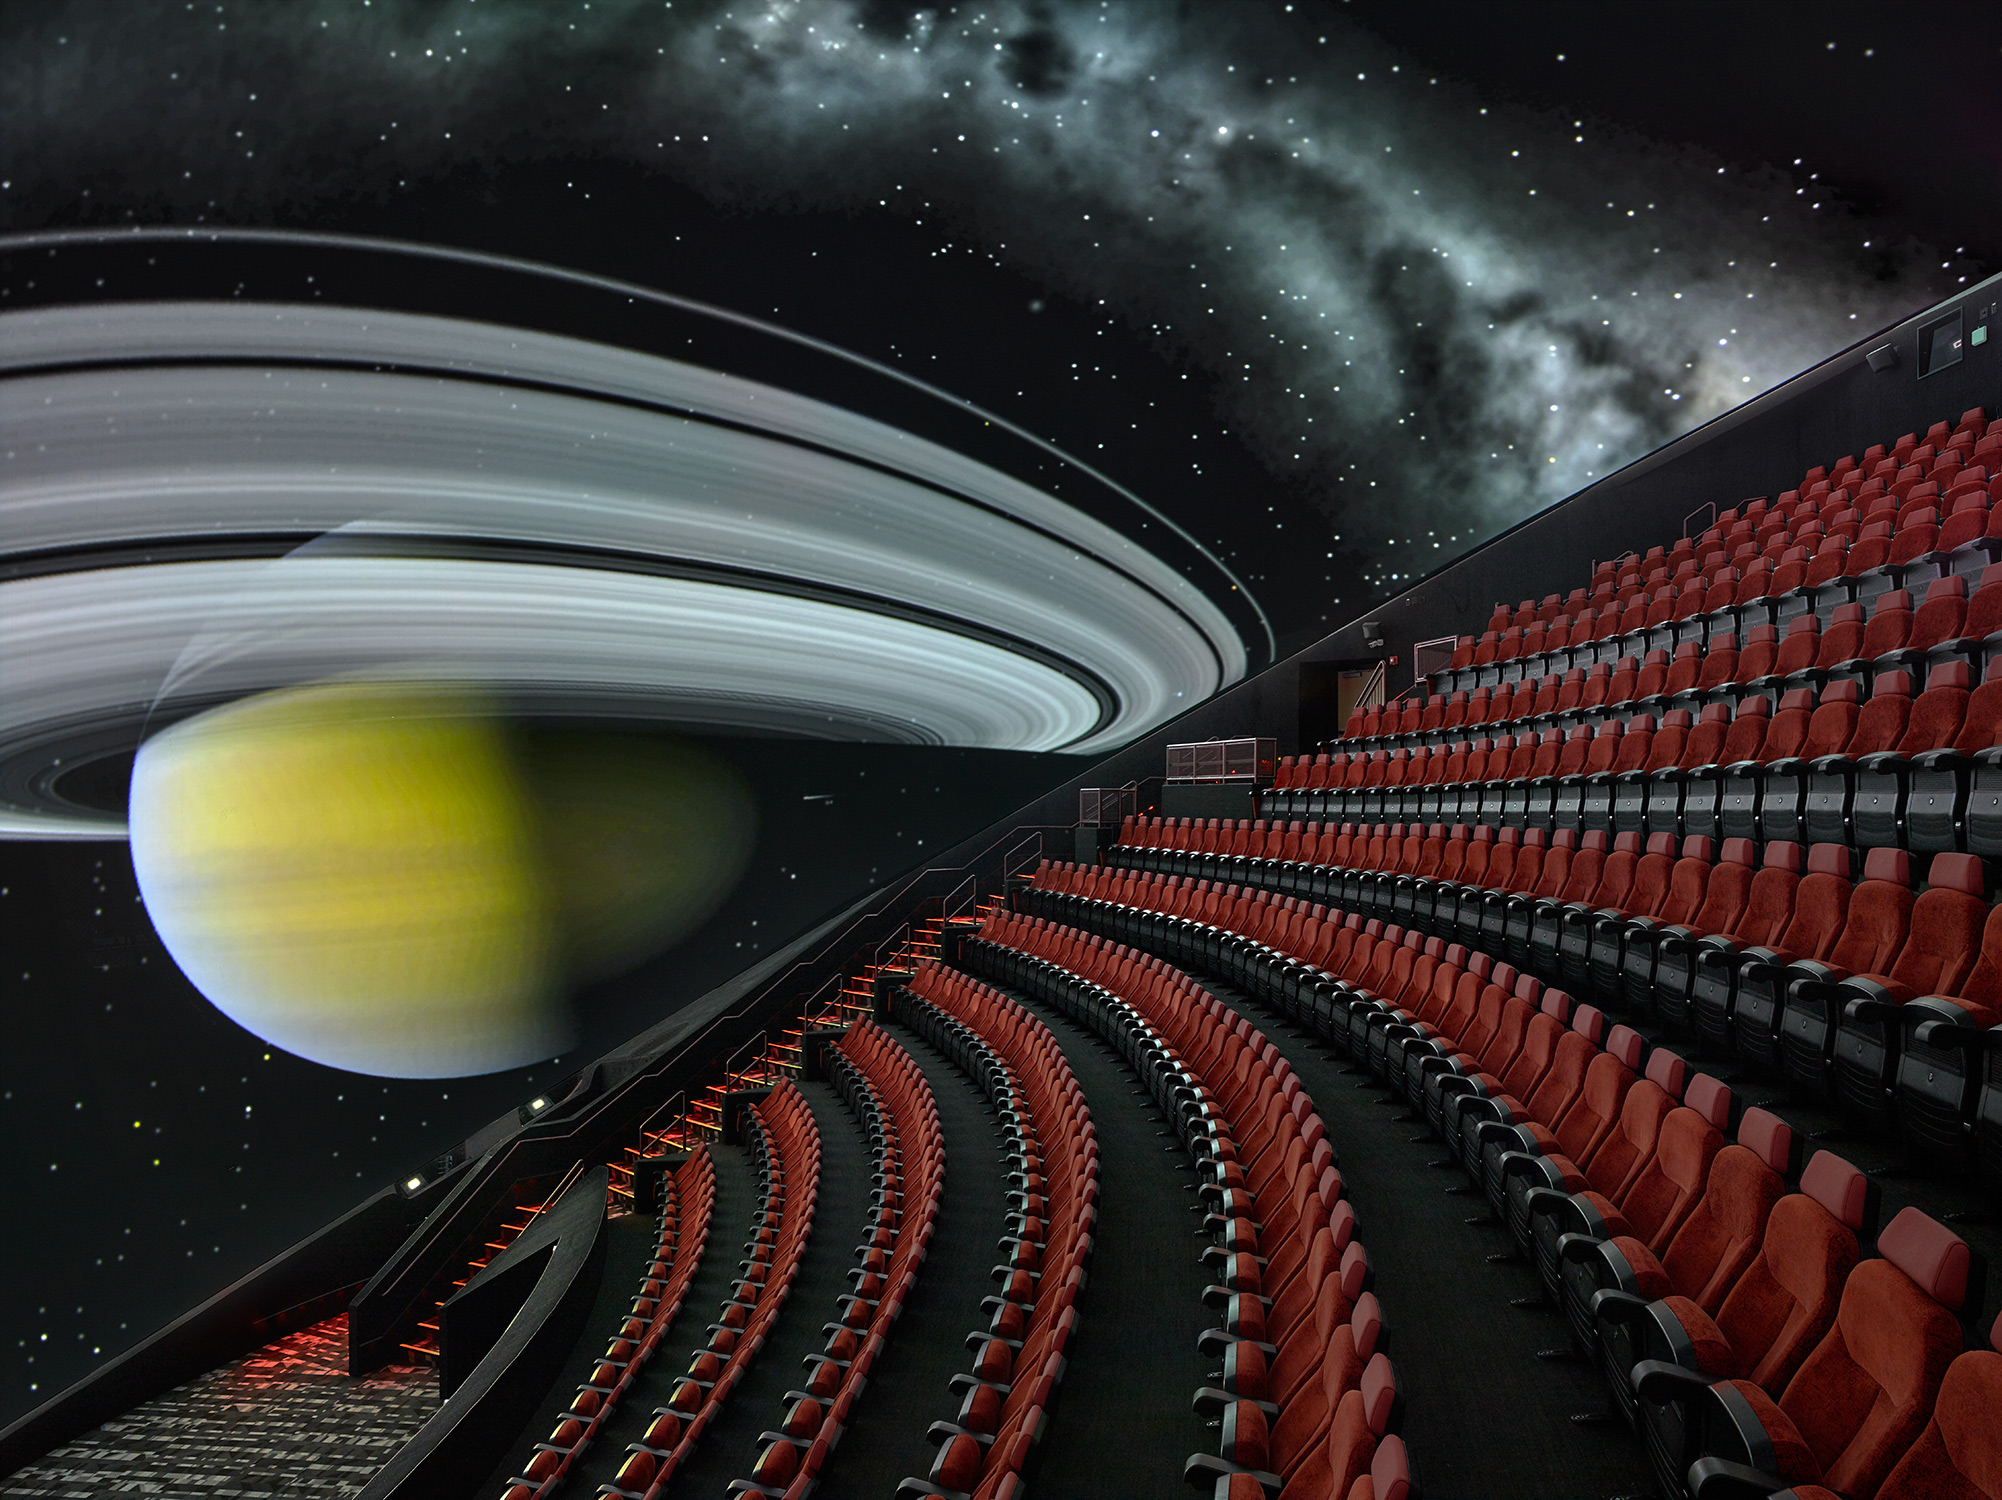 web-Theatre-2-Saturn.jpg